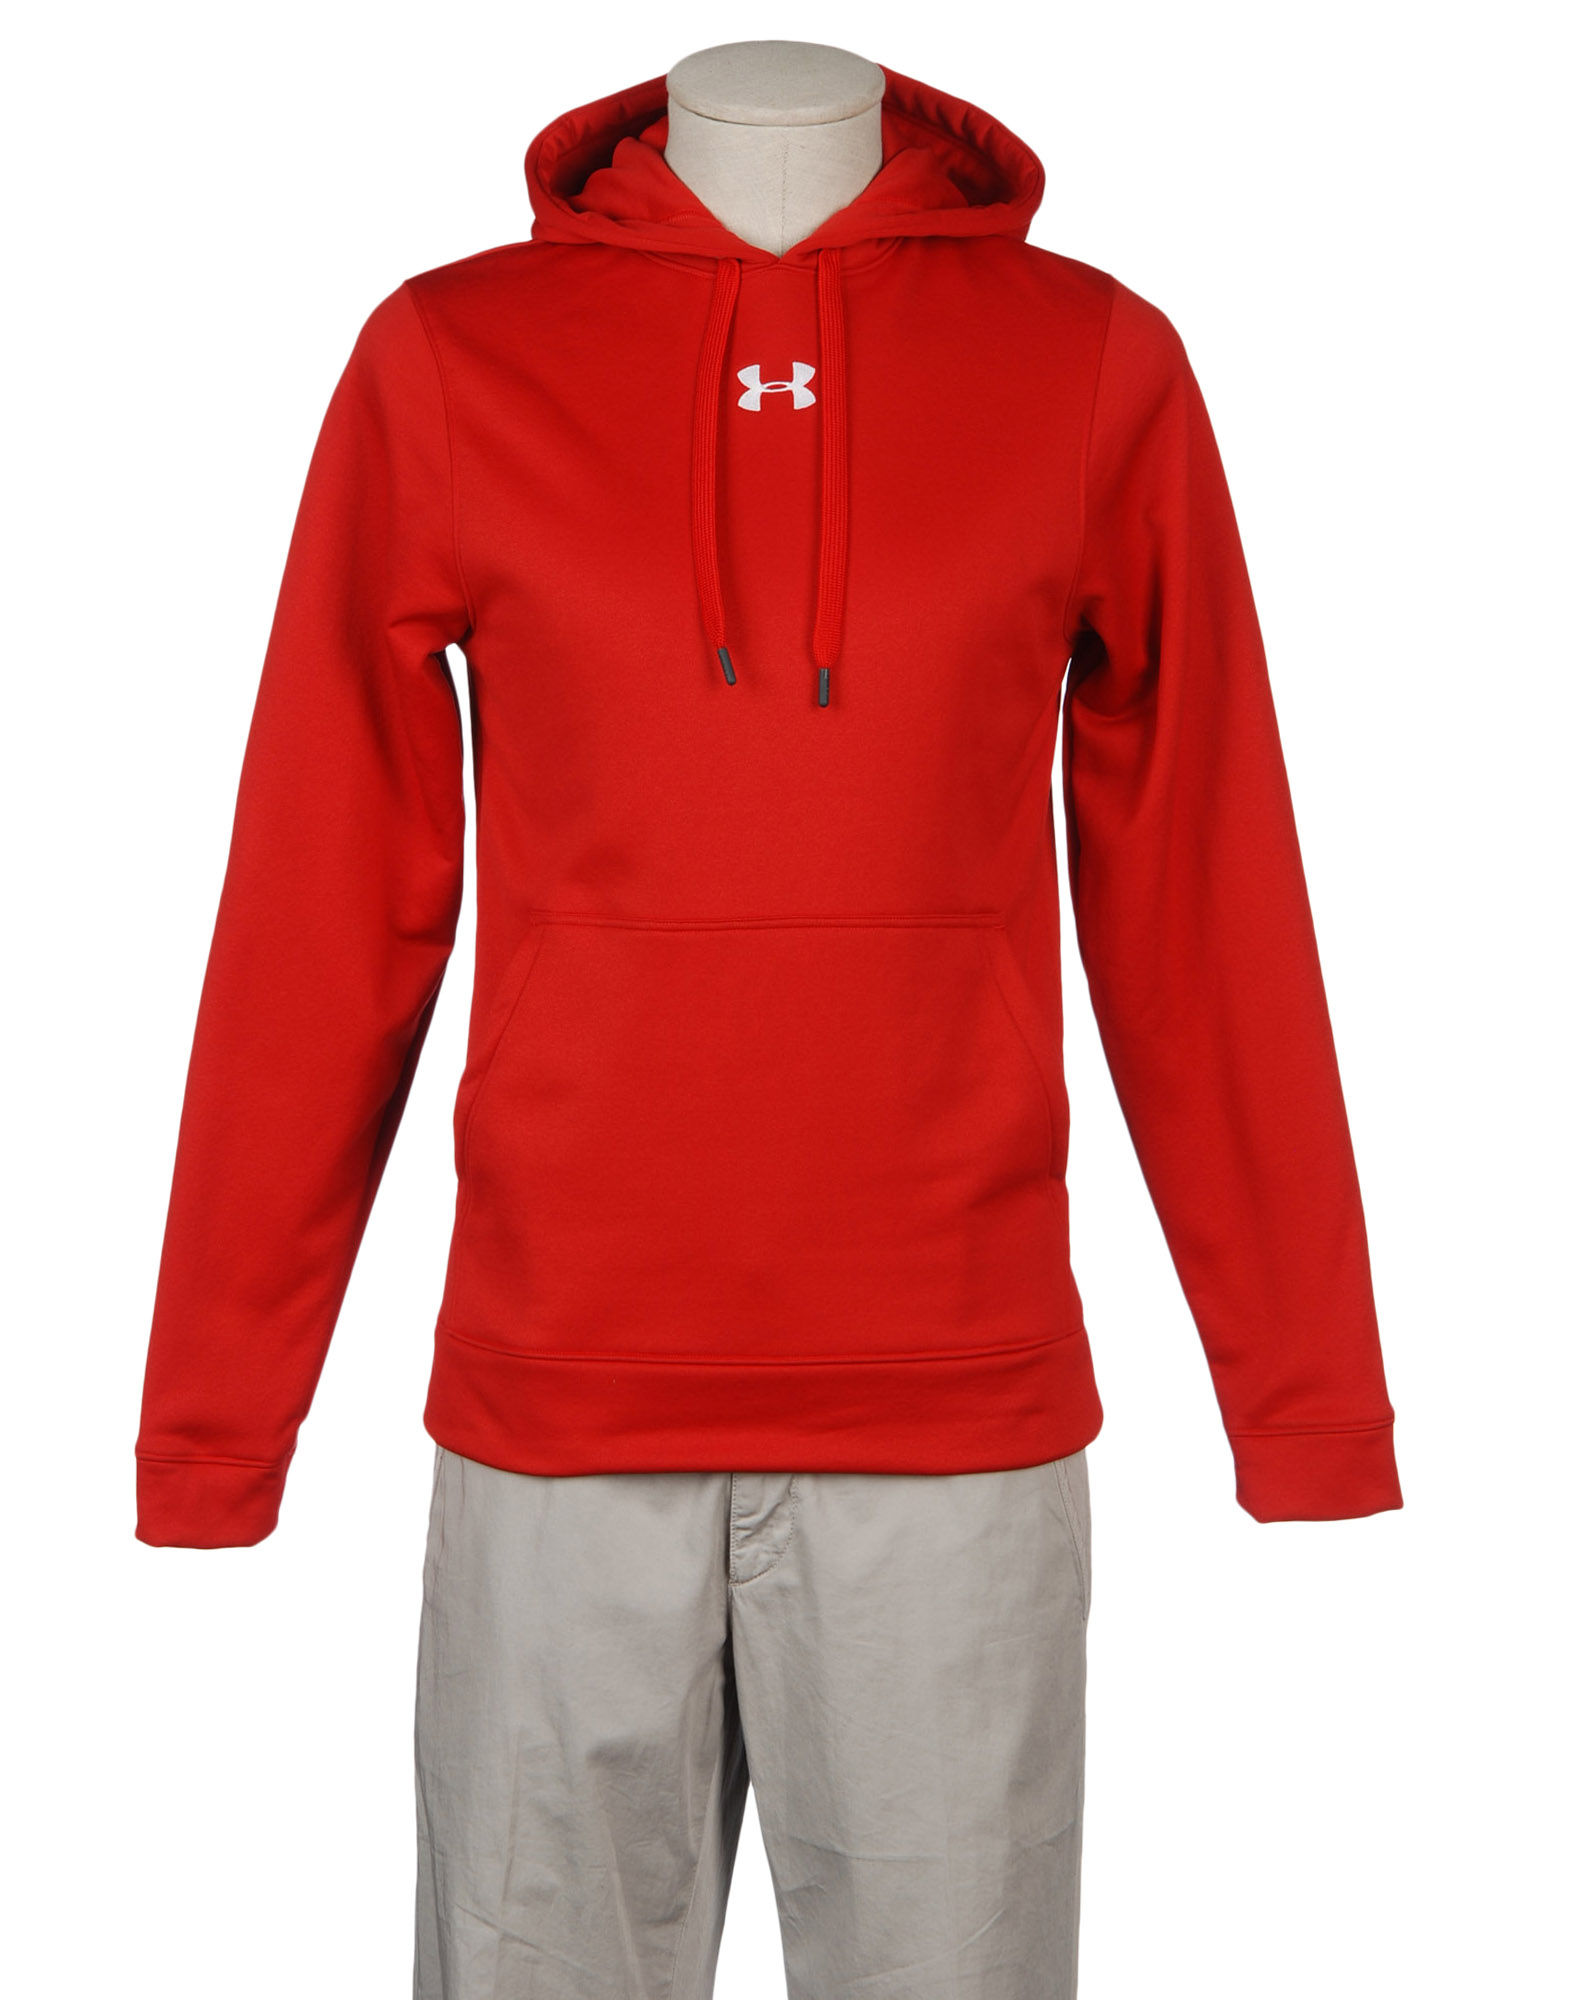 Under armour sweatshirts for men red